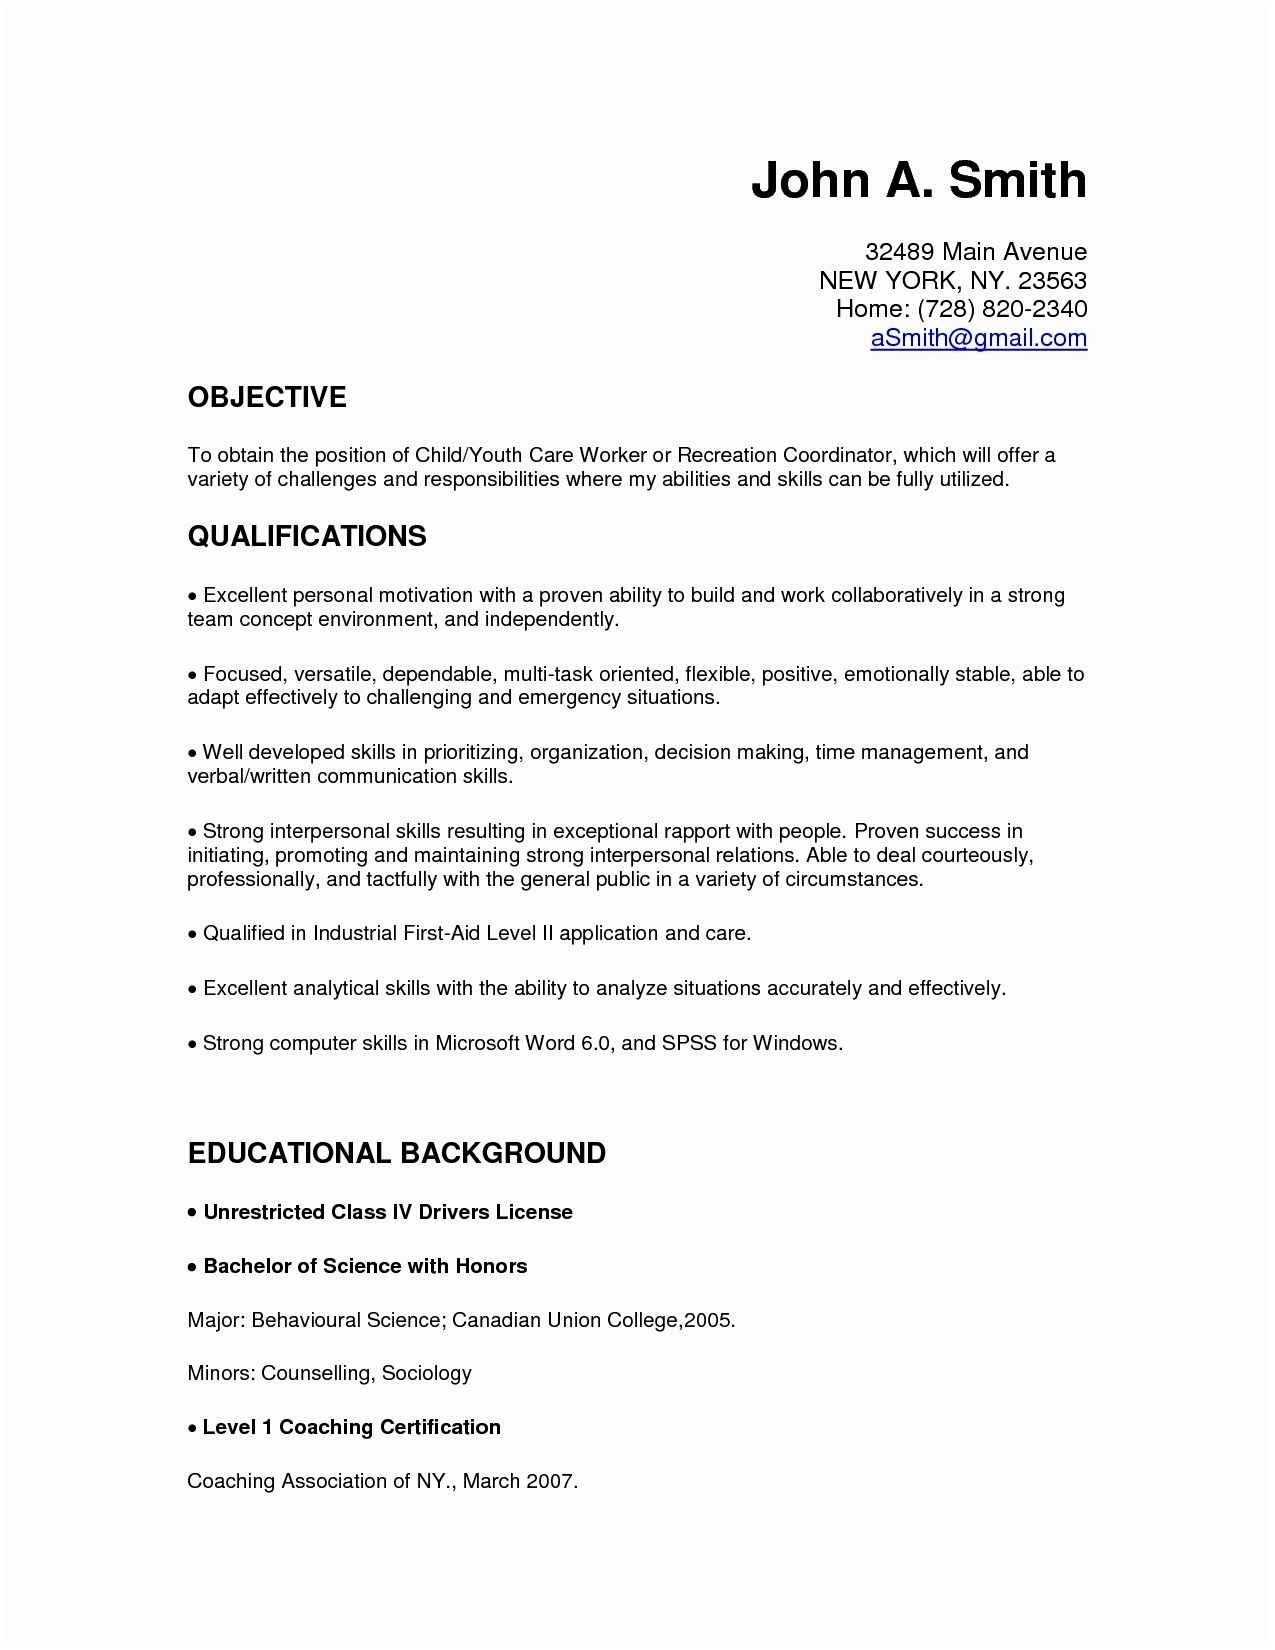 hr manager resume template example-Sample Hr Manager Resume Templates New Make A Resume Basic Resume Template New Ivoice Template 0d 16-h